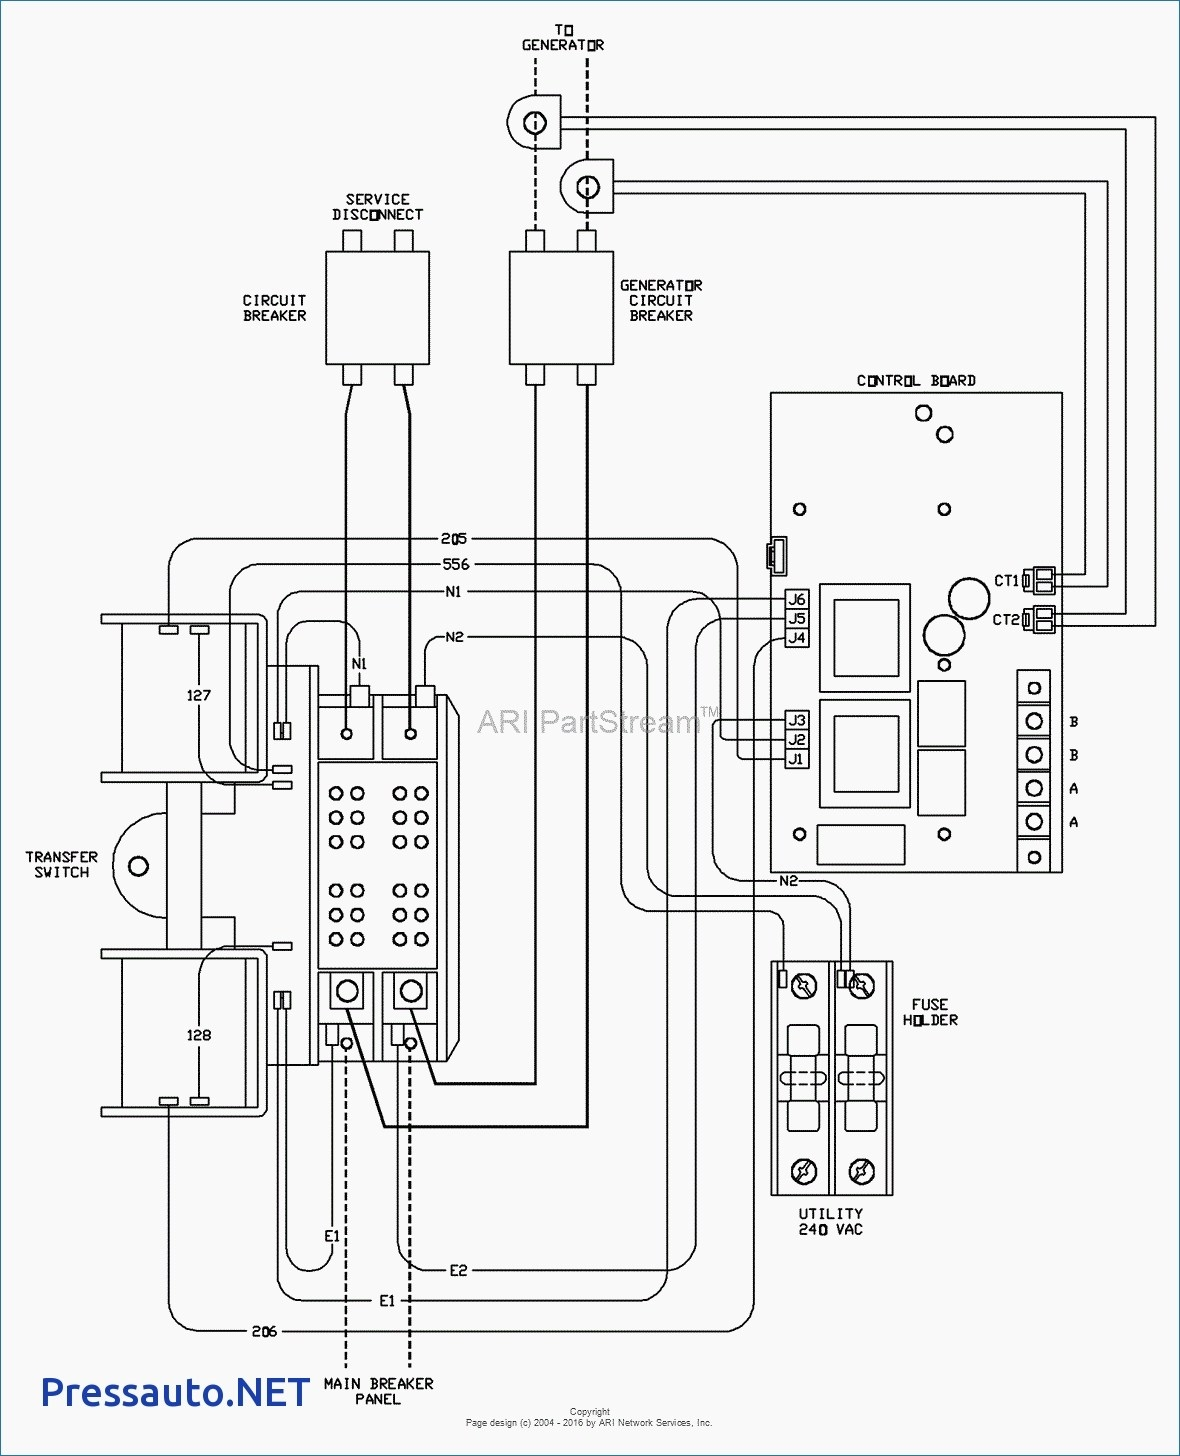 Transfer Switch Wiring Diagram Whole House Transfer Switch Wiring Diagram Beautiful Generator Manual Transfer Switch Wiring Diagram J on Ford E Wiring Diagram Liry Of Diagrams Van Fuse